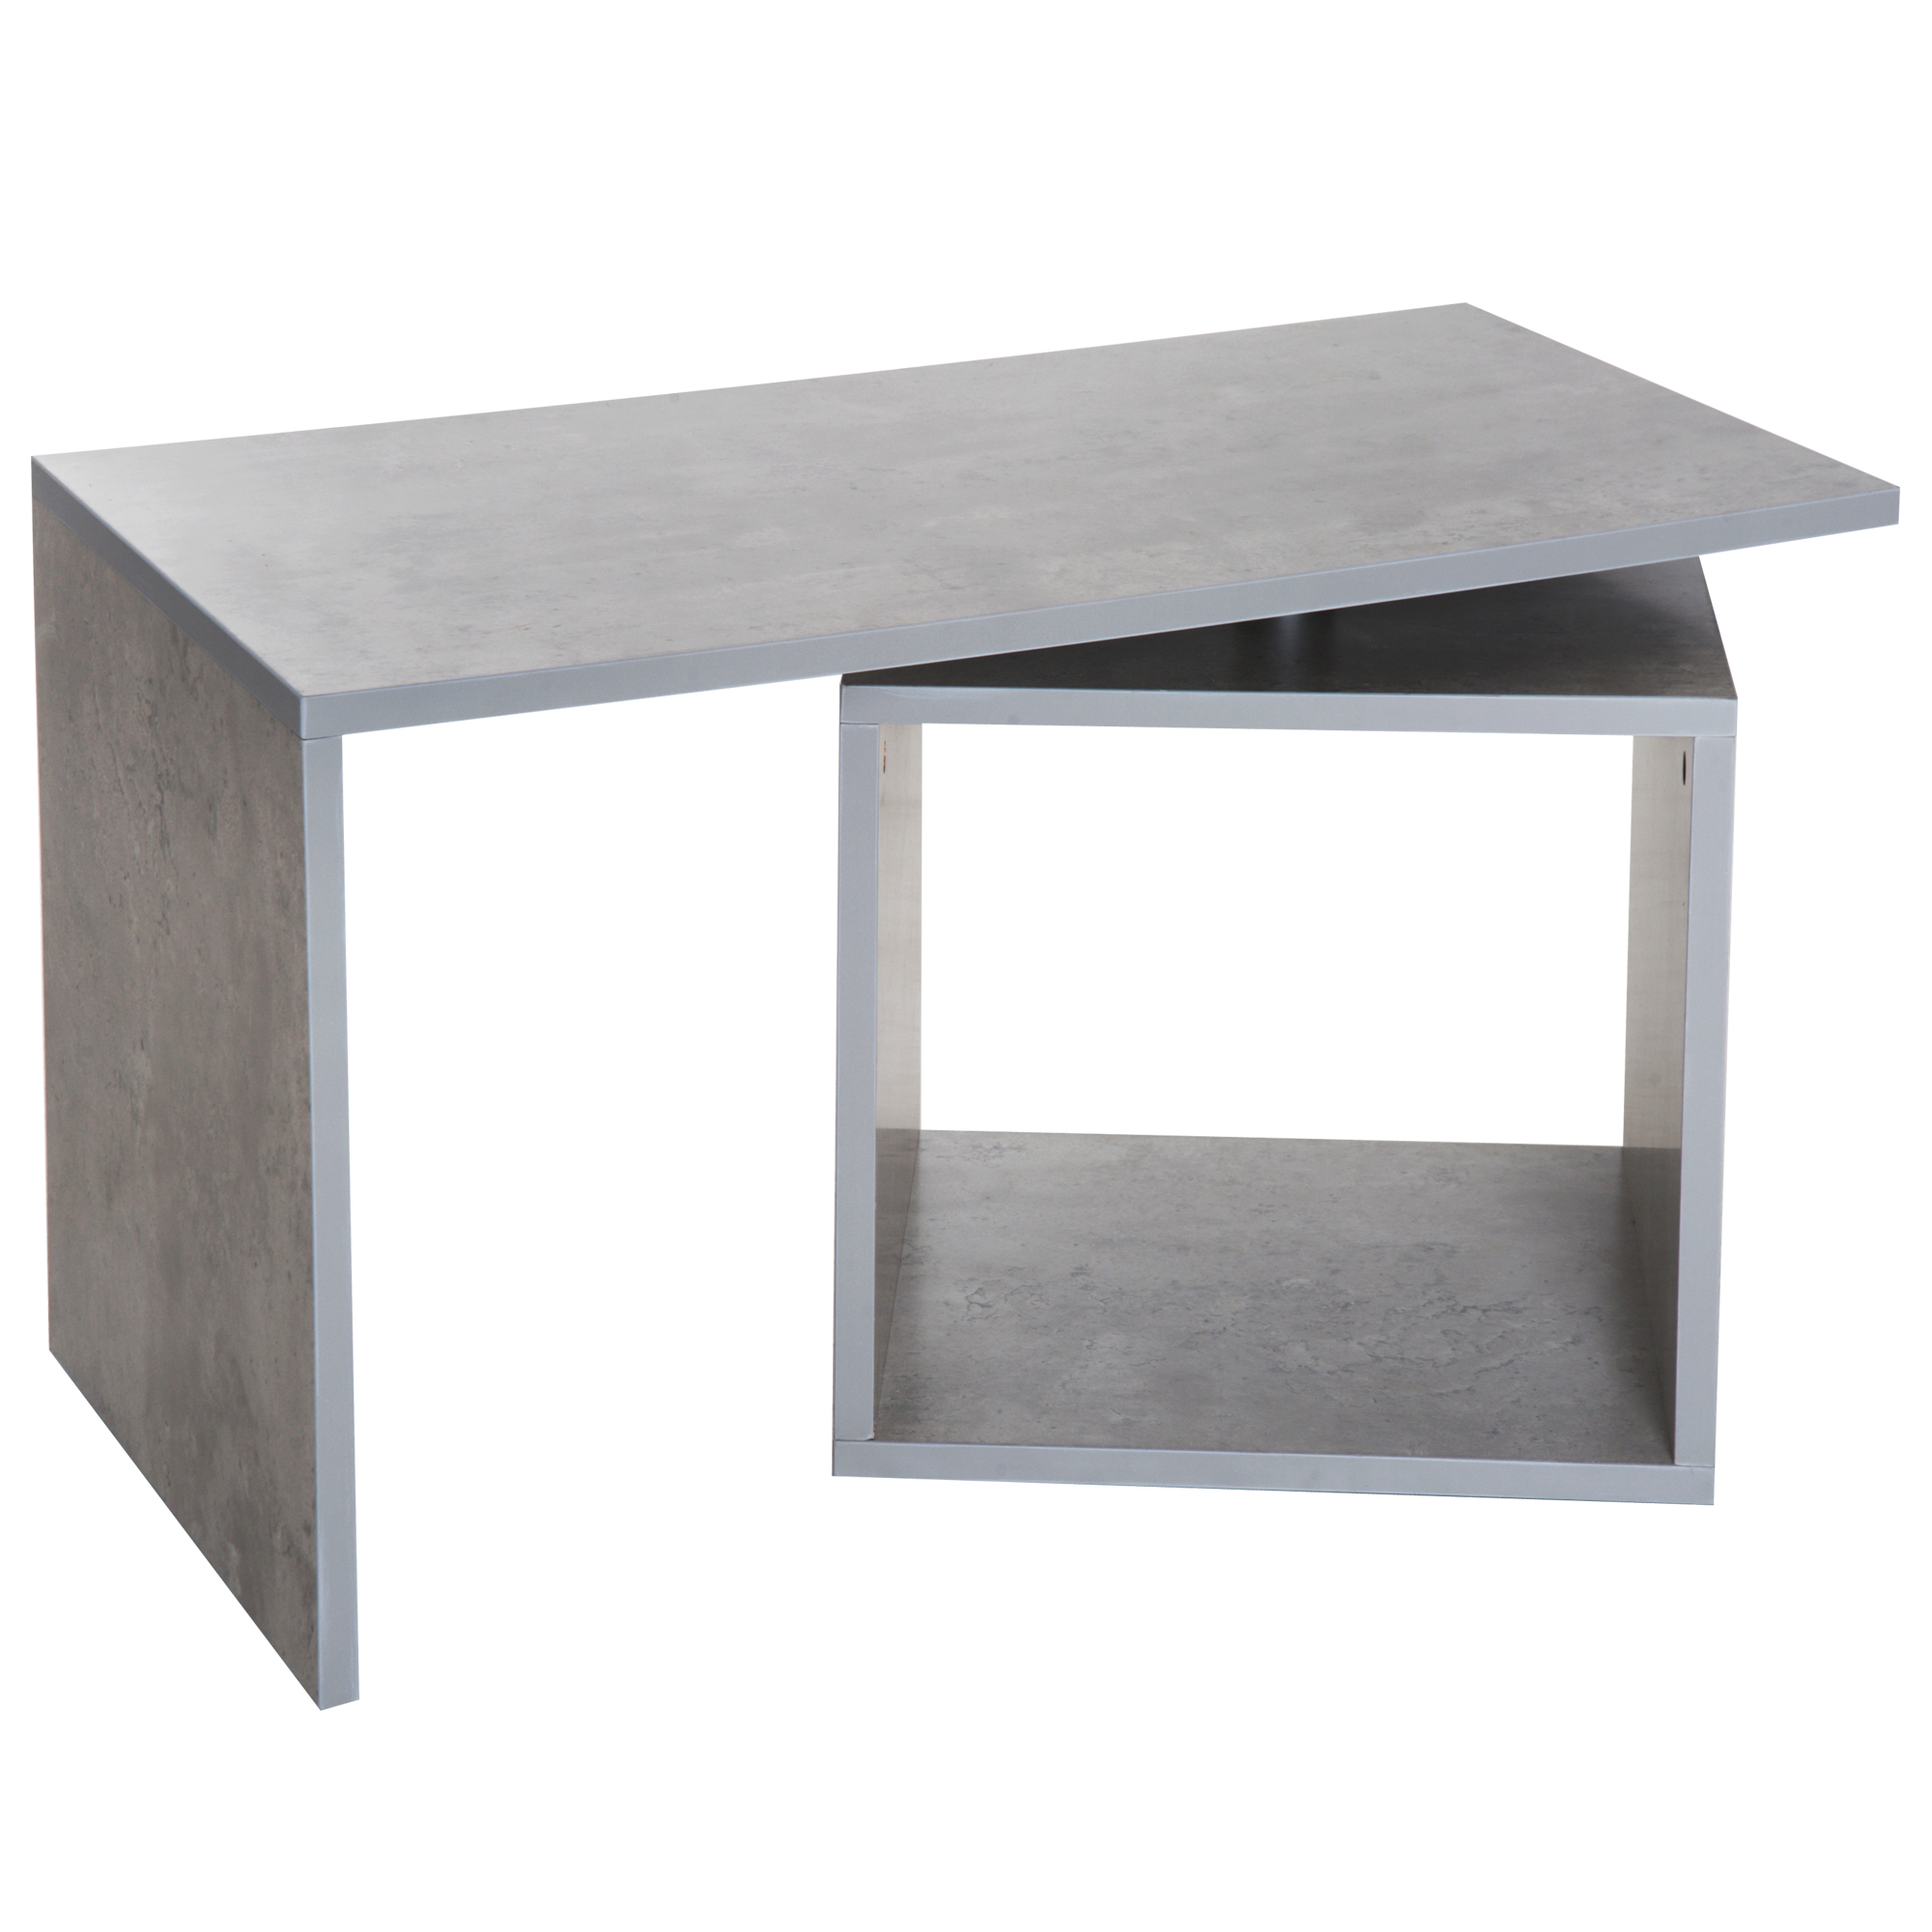 HOMCOM Coffee Table Living Room Coffee Table Modern Design With Compartment Storage Wooden 77 × 40 × 44 Cm Gray